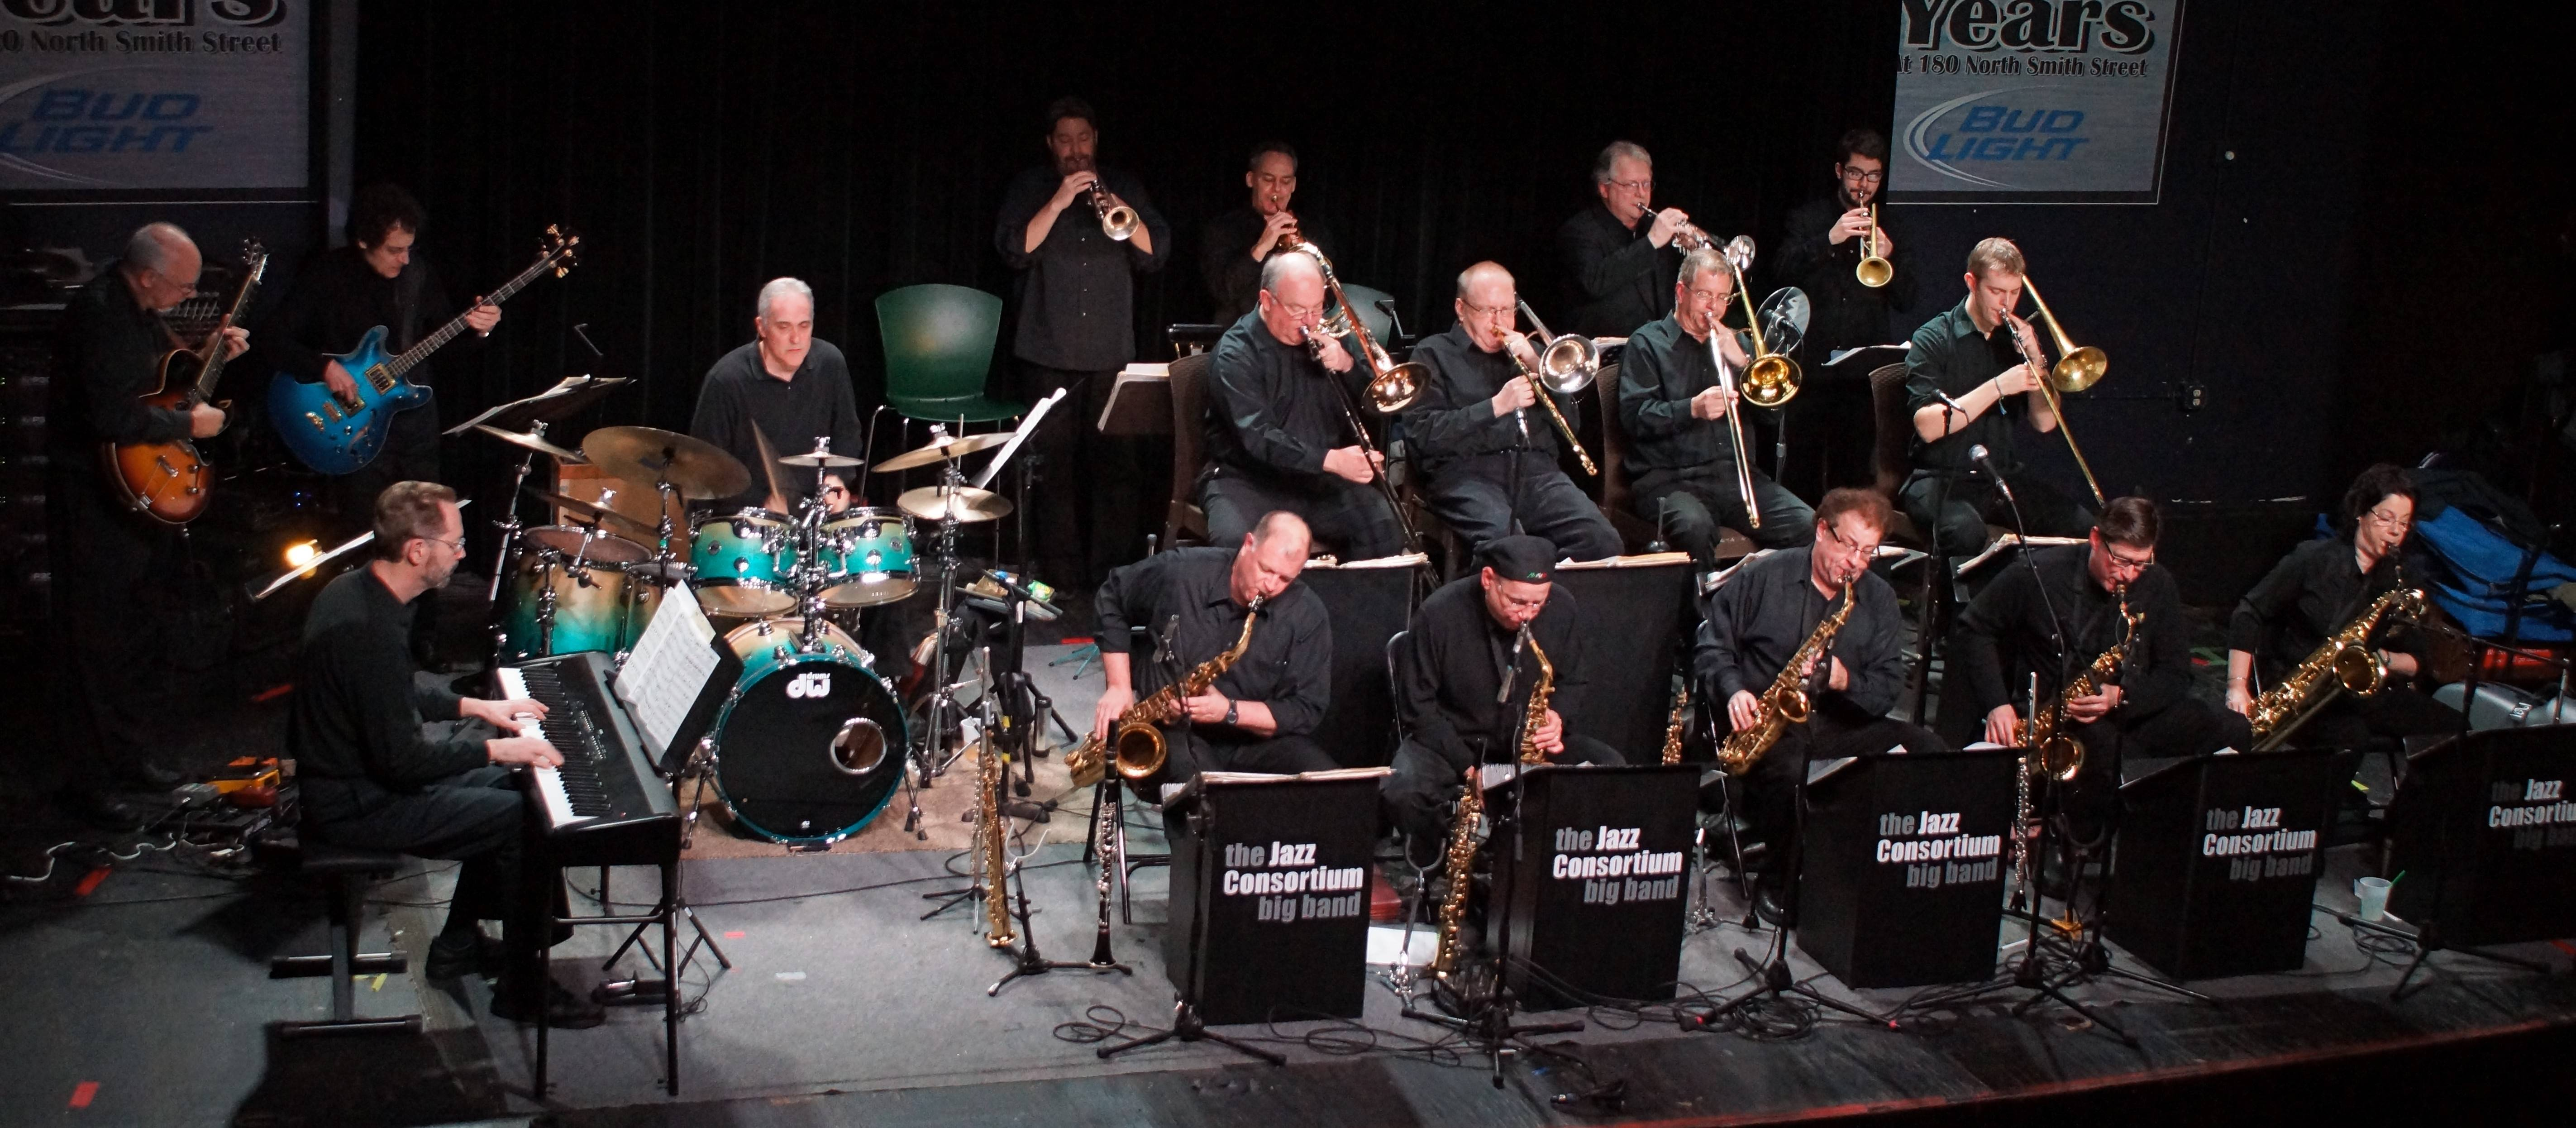 The Jazz Consortium Big Band plays a special Mother's Day Concert at Durty Nellie's in Palatine at 6 p.m. Sunday, May 11.